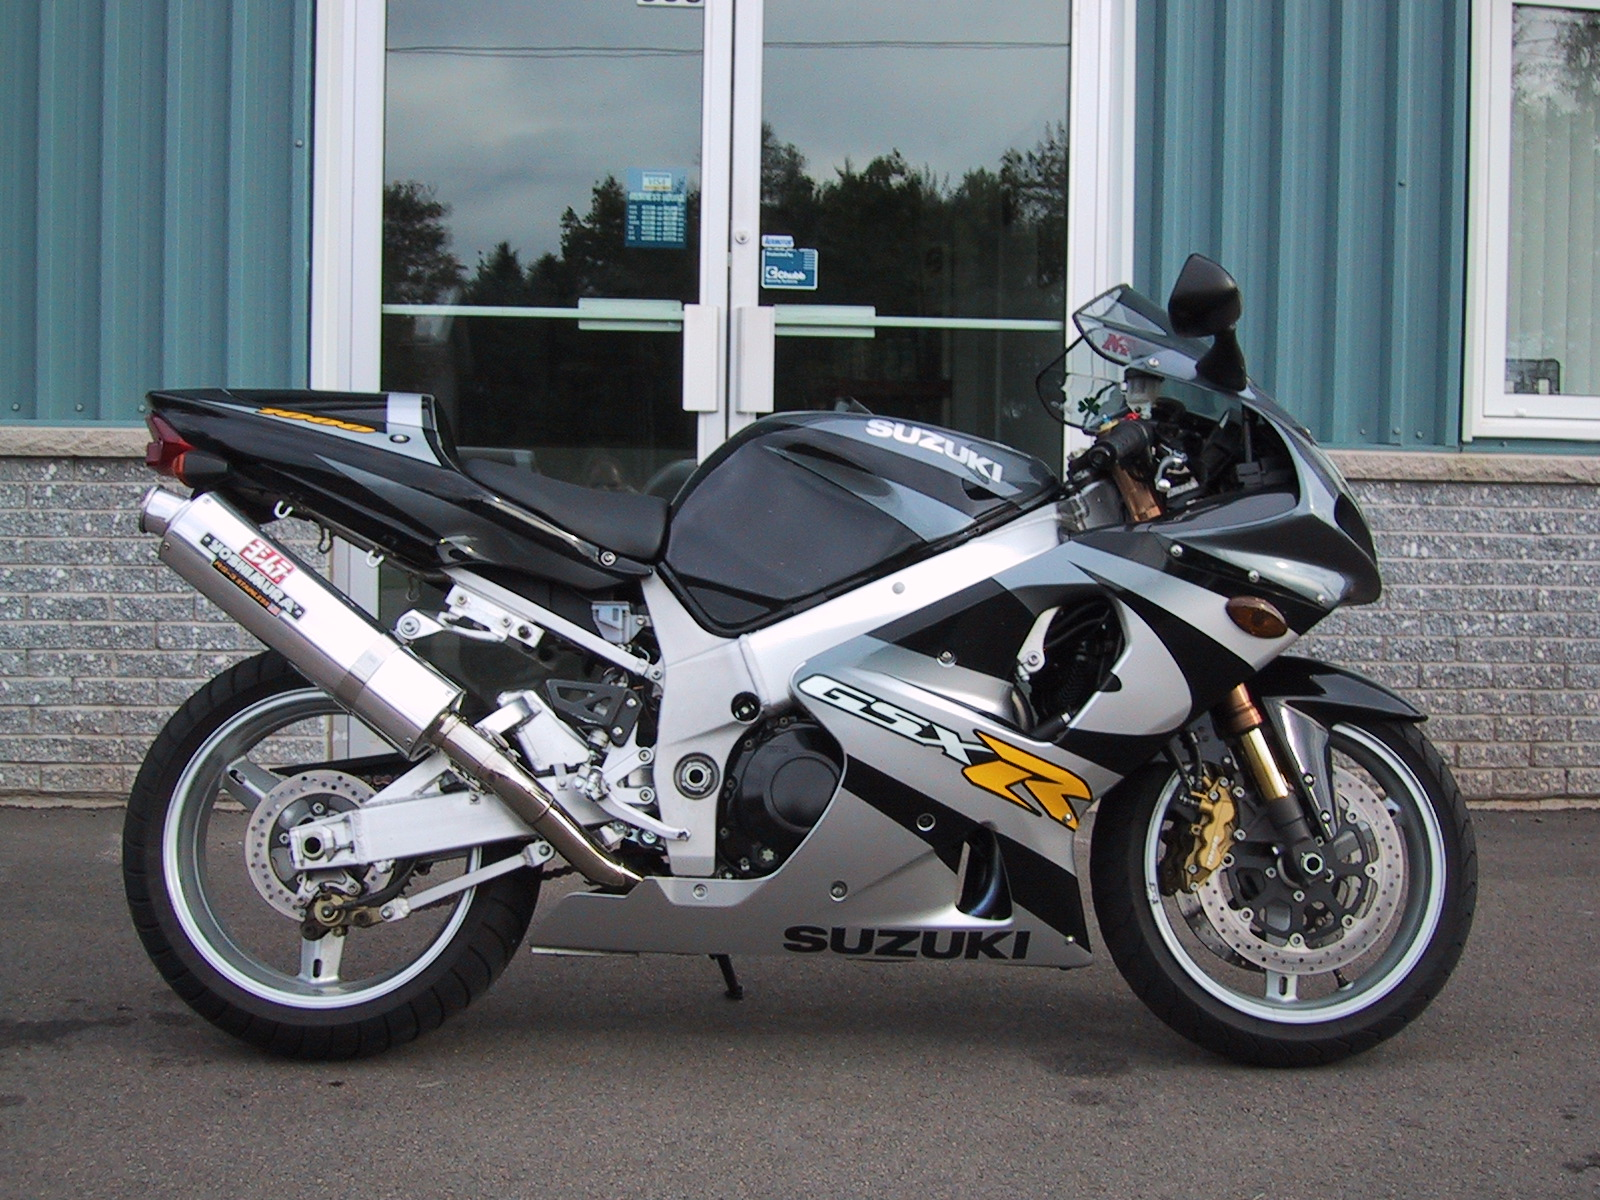 Suzuki GSX-R1000 - Wikipedia on